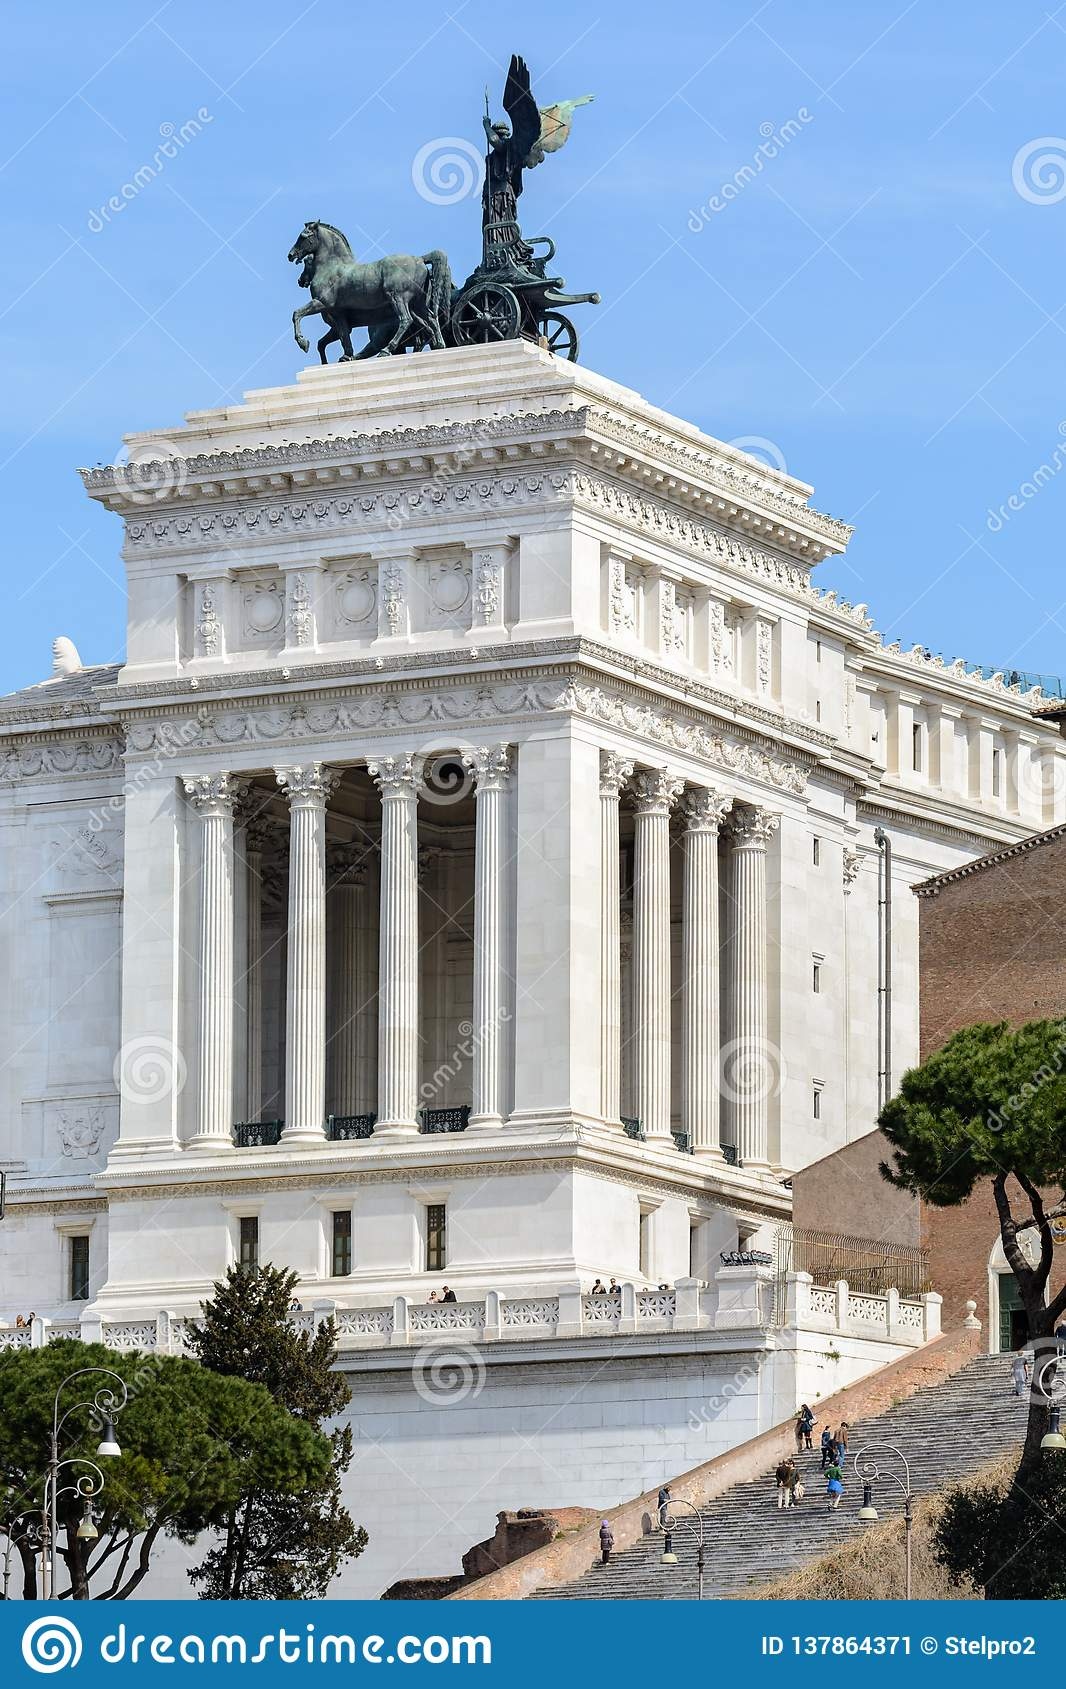 Capitol Hill. In the central part of the Vittoriano memorial complex there is a bronze equestrian statue of Victor Emmanuel II 12